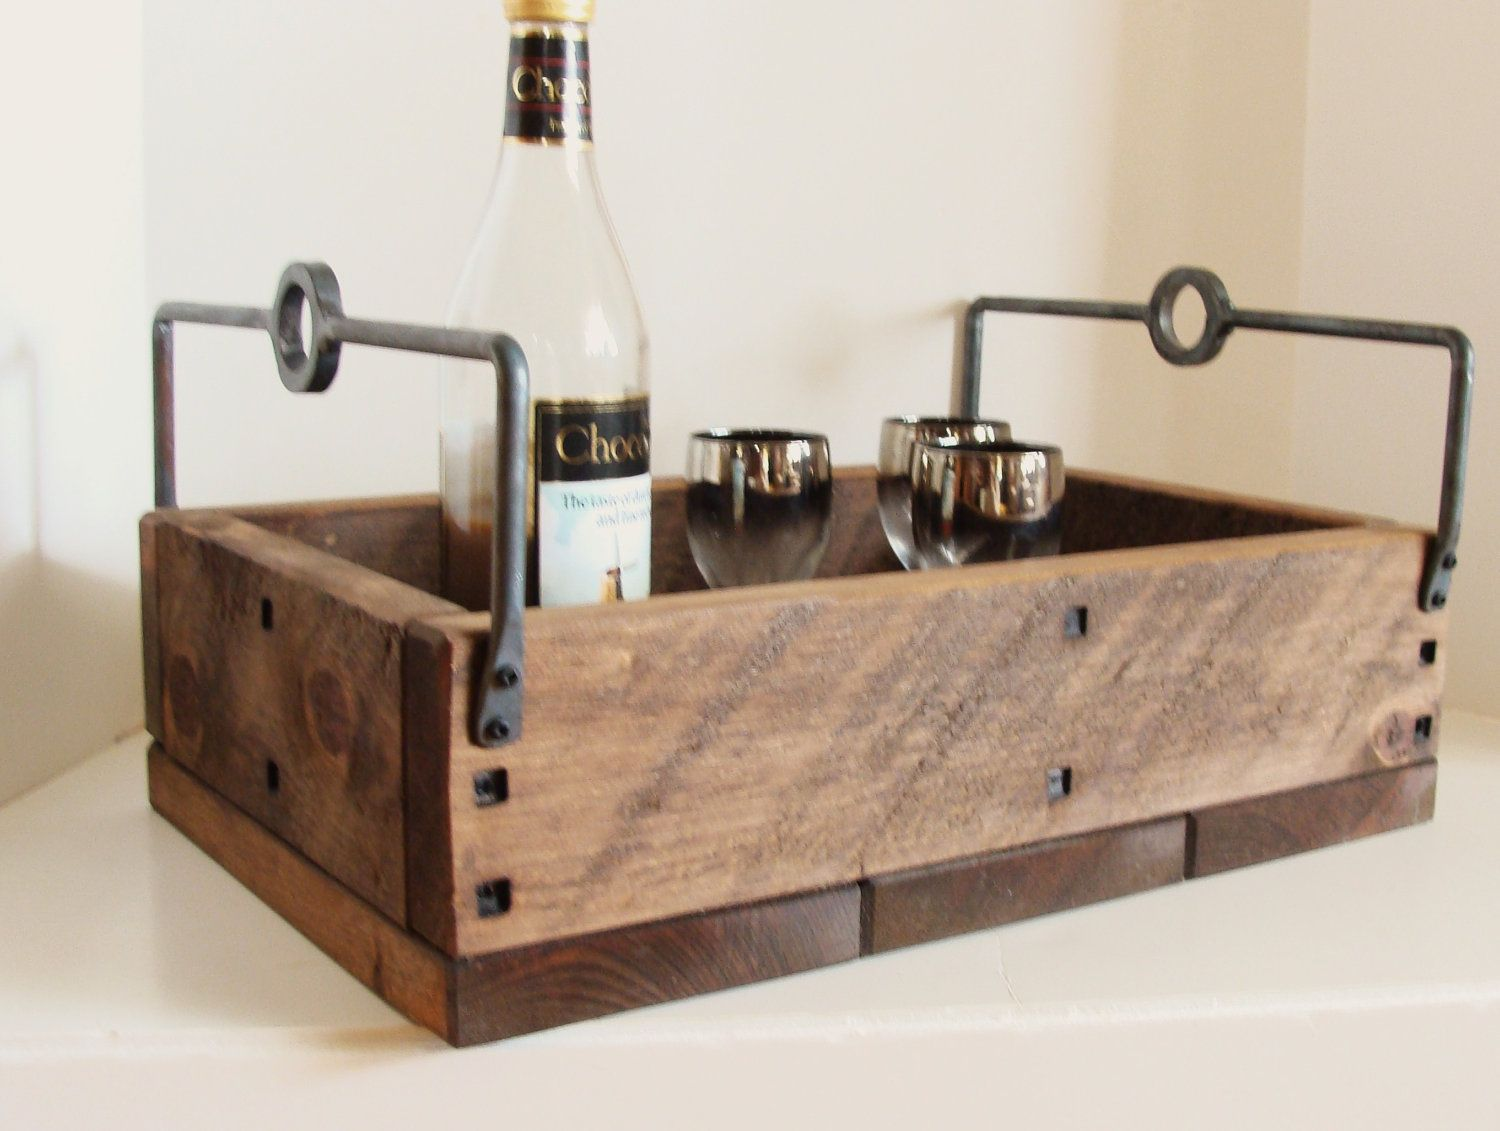 Wood Serving Tray Wine Holder Rustic Industrial Chic Rugged Forged Iron  Handles Wine and Cheese Homebrew - Rustic Tray Industrial Wood And Steel Serving Tray Forged Iron Handles